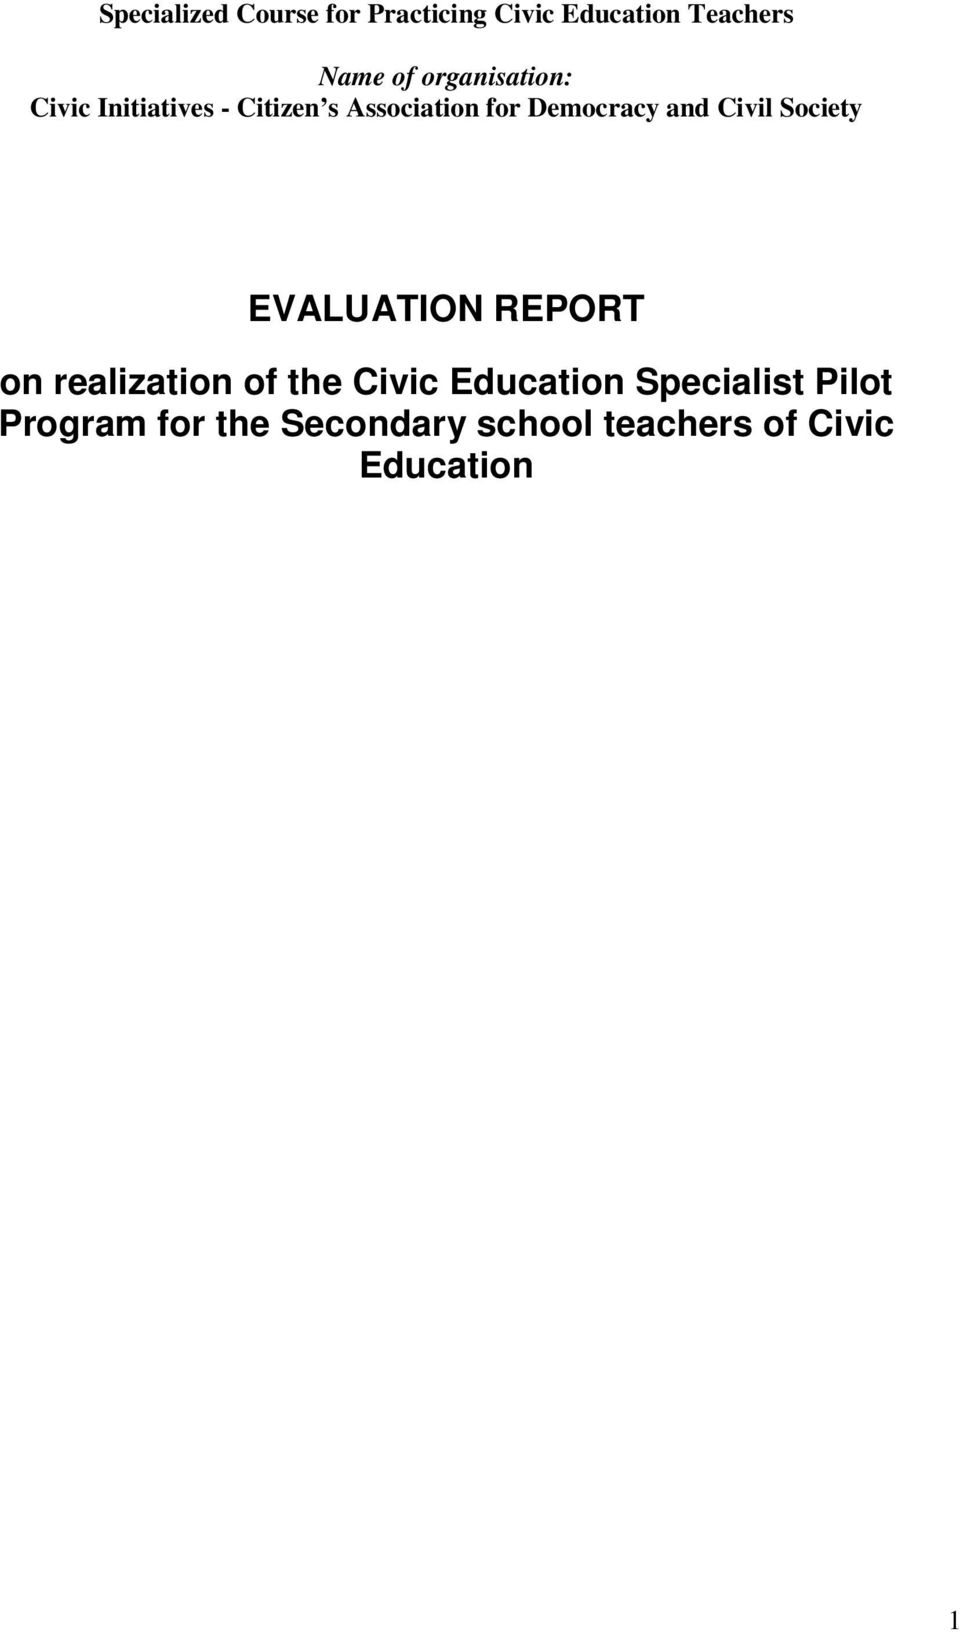 and Civil Society EVALUATION REPORT on realization of the Civic